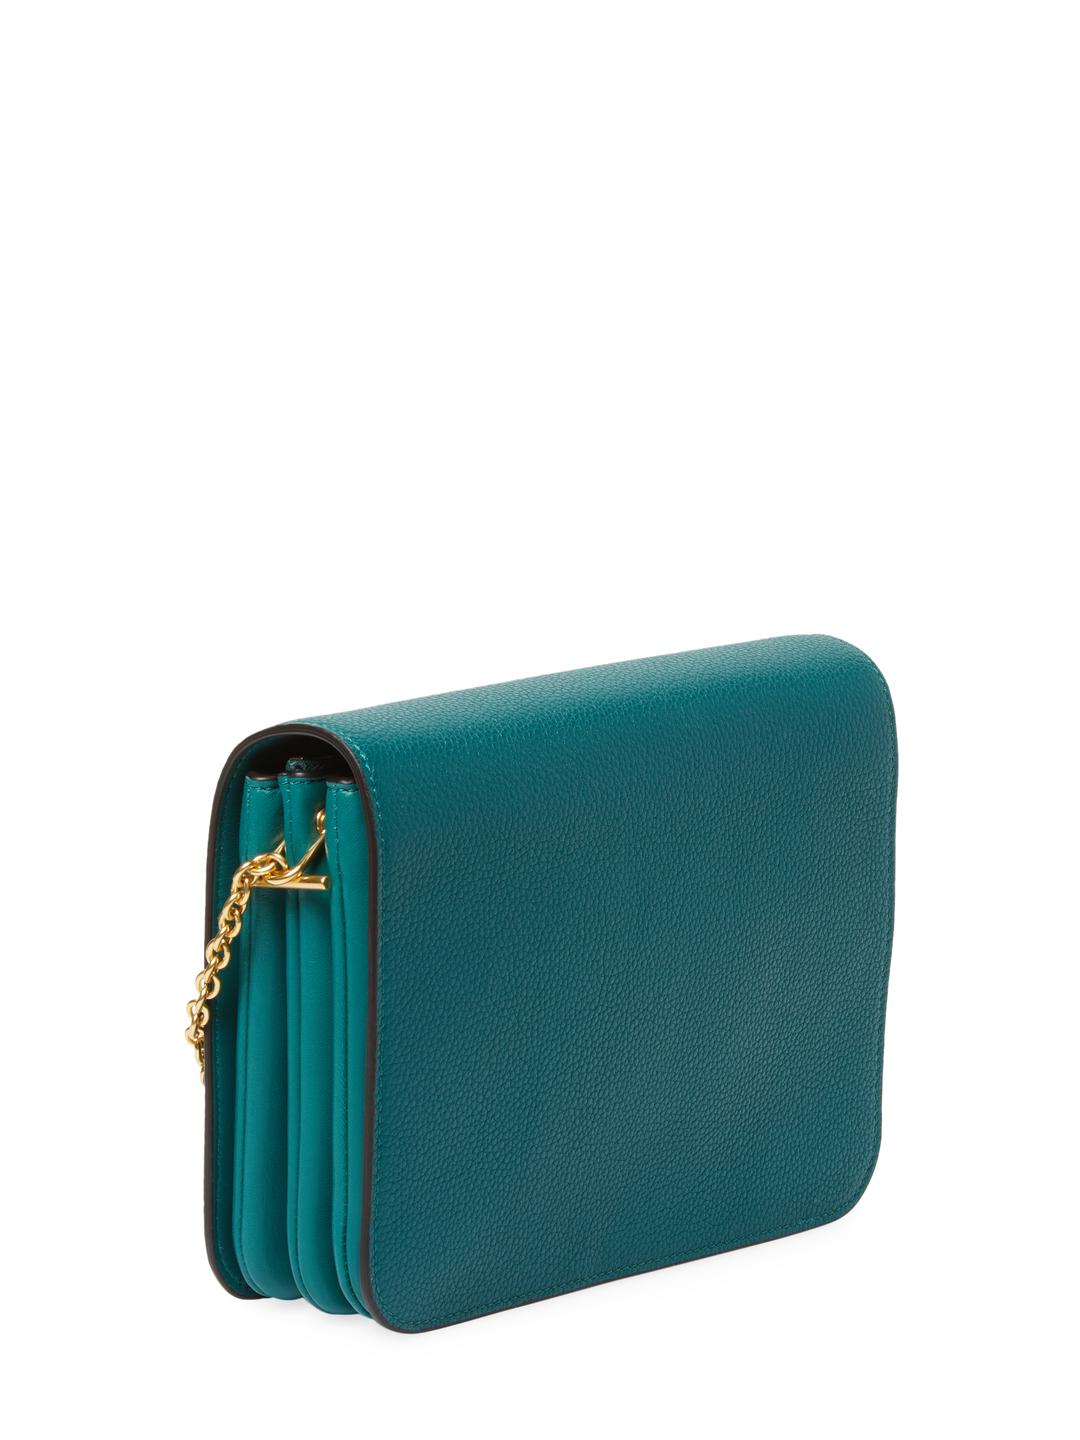 d6e454b83b4 ... ocean green small classic grain darley mulberry 3d212 fc789; canada  lyst mulberry clifton small leather shoulder bag in green c4d27 48321